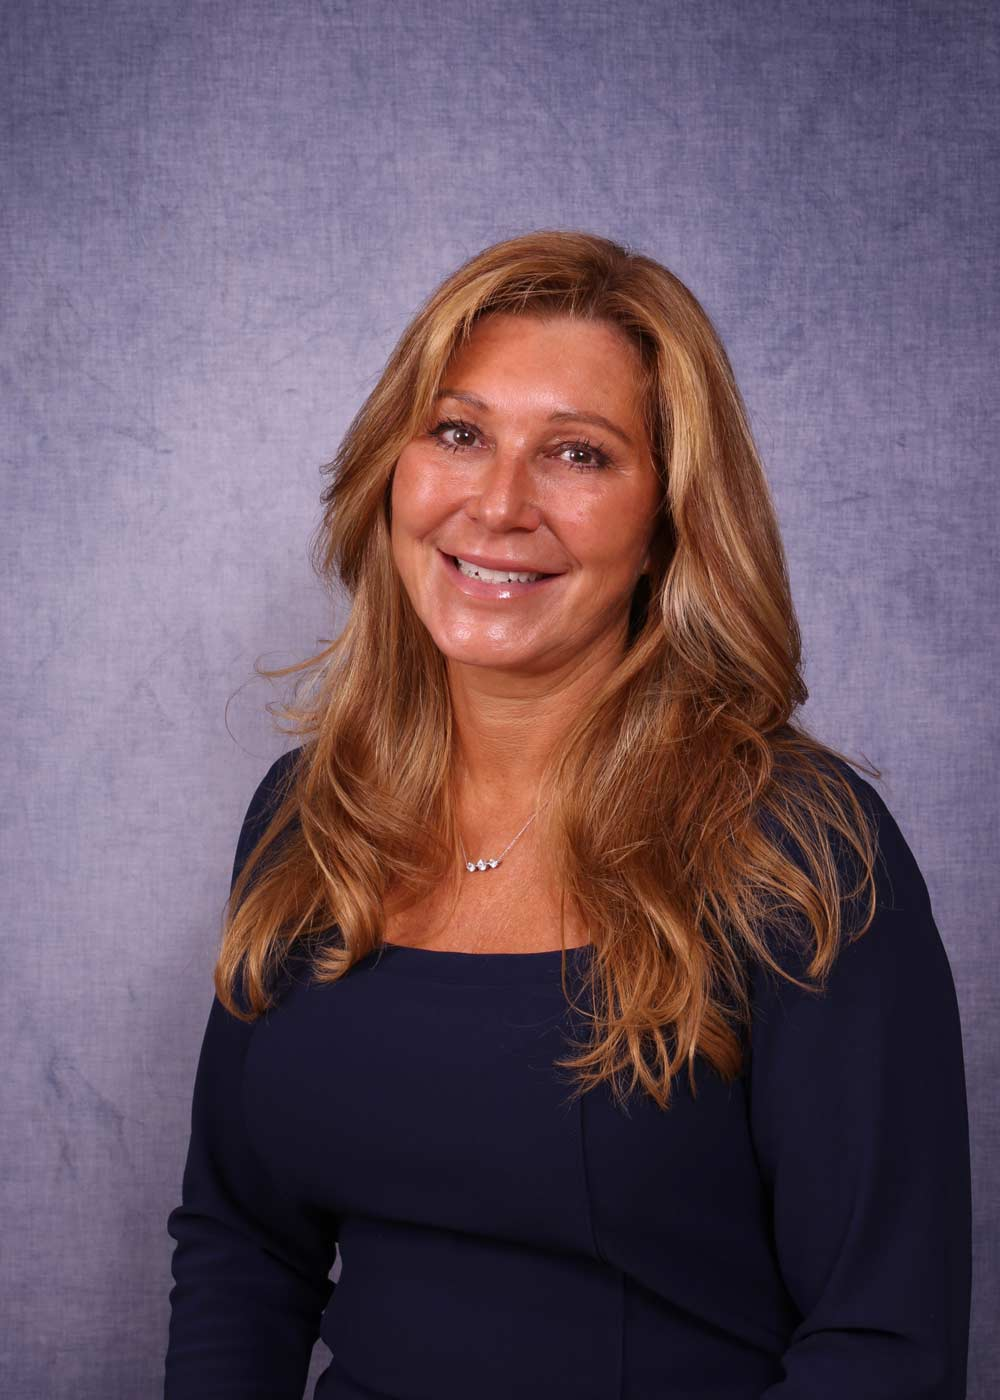 Beth Phillips, PA of CNY Cosmetic & Reconstructive Surgery, LCC in Syracuse, New York